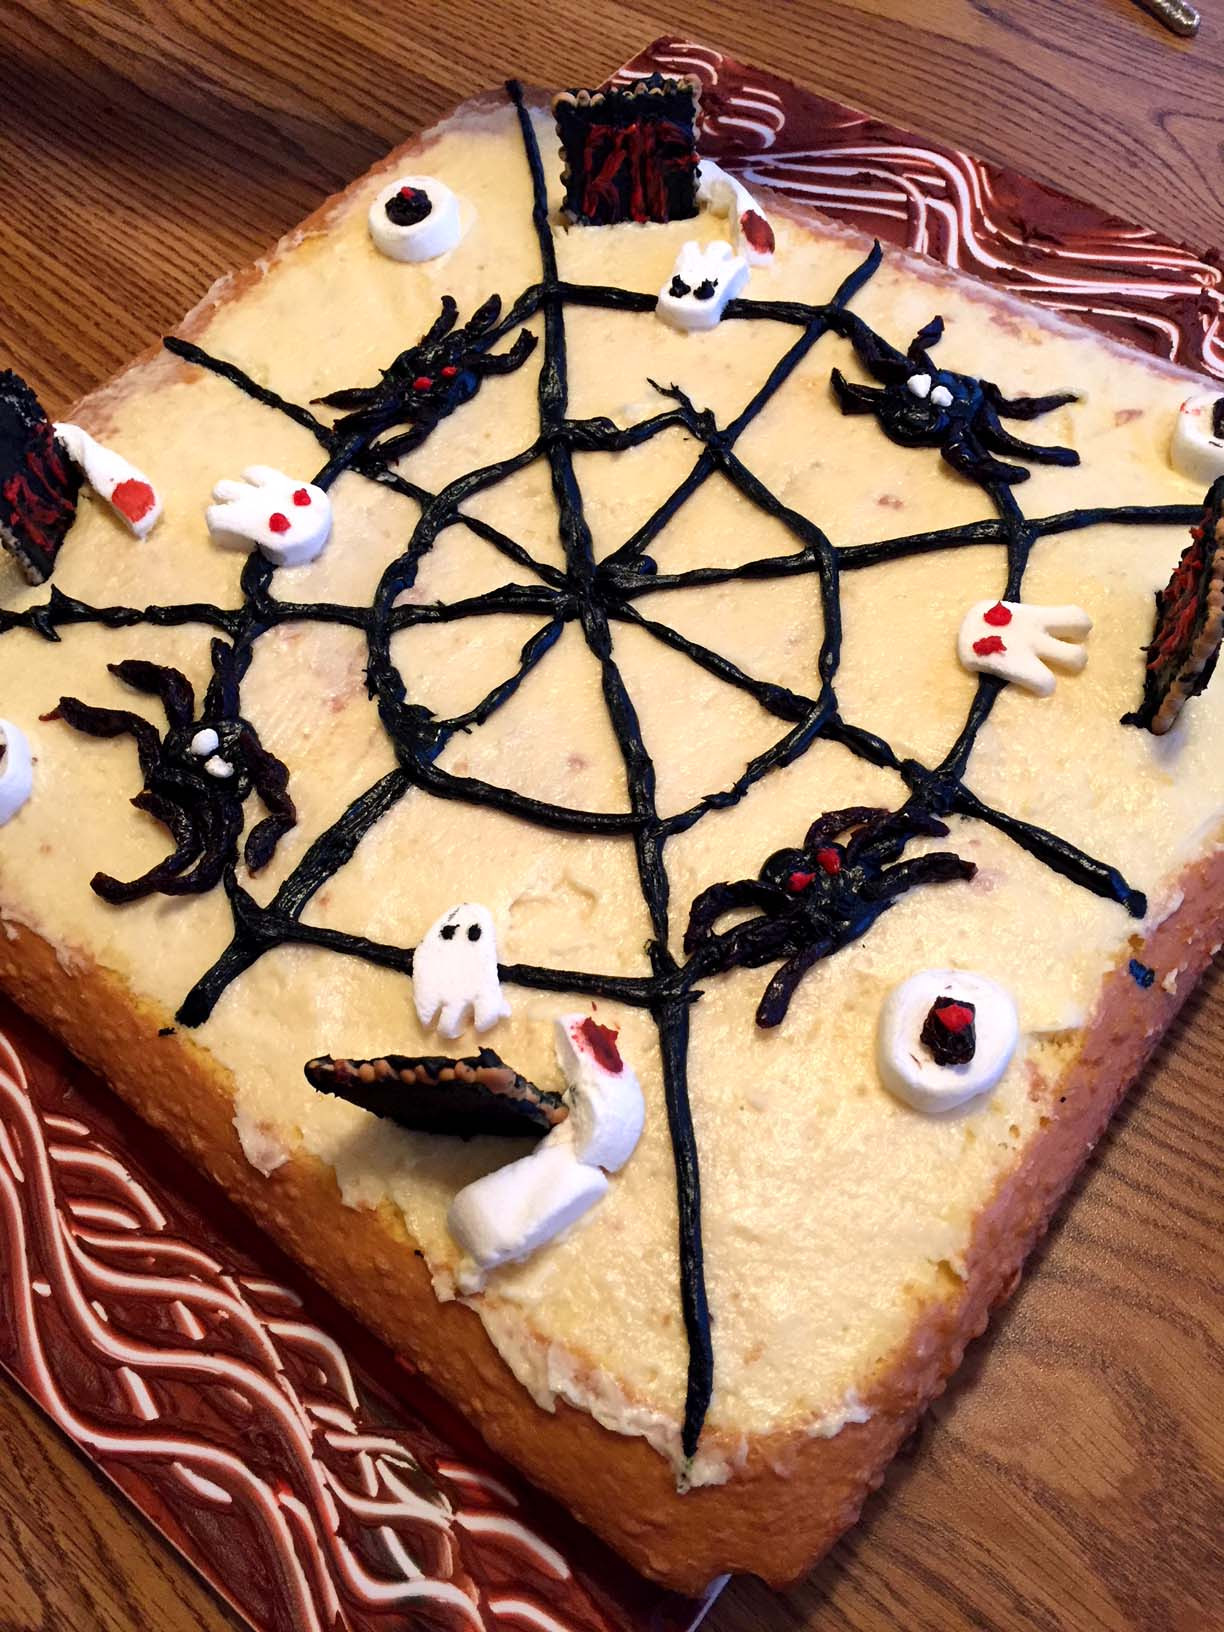 Easy Halloween Cakes  Easy Halloween Cake Decorating Ideas For Spooky Cake